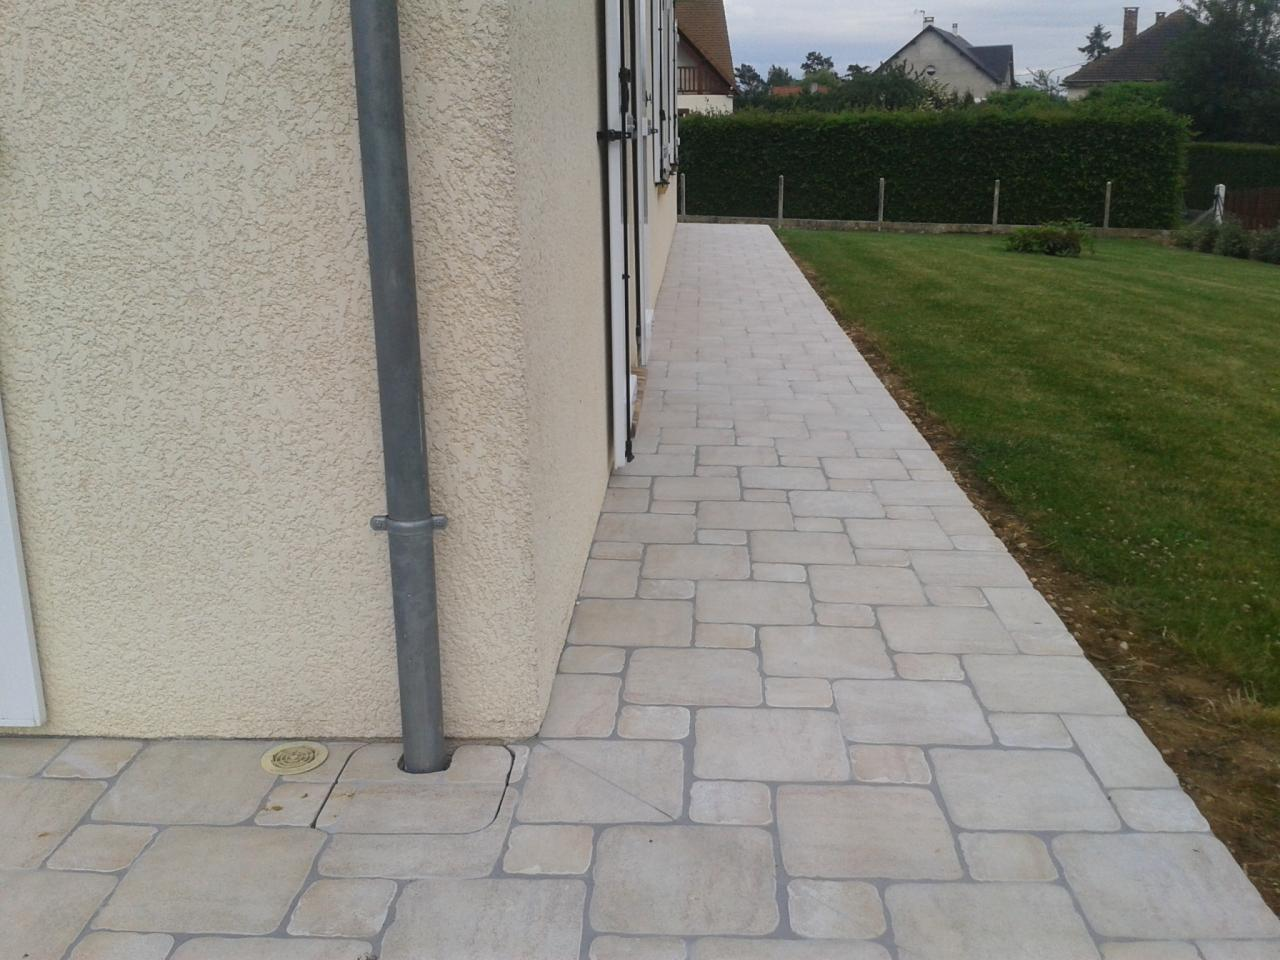 Carrelage ext rieur terrasse all e et trottoir for Poser carrelage sur carrelage